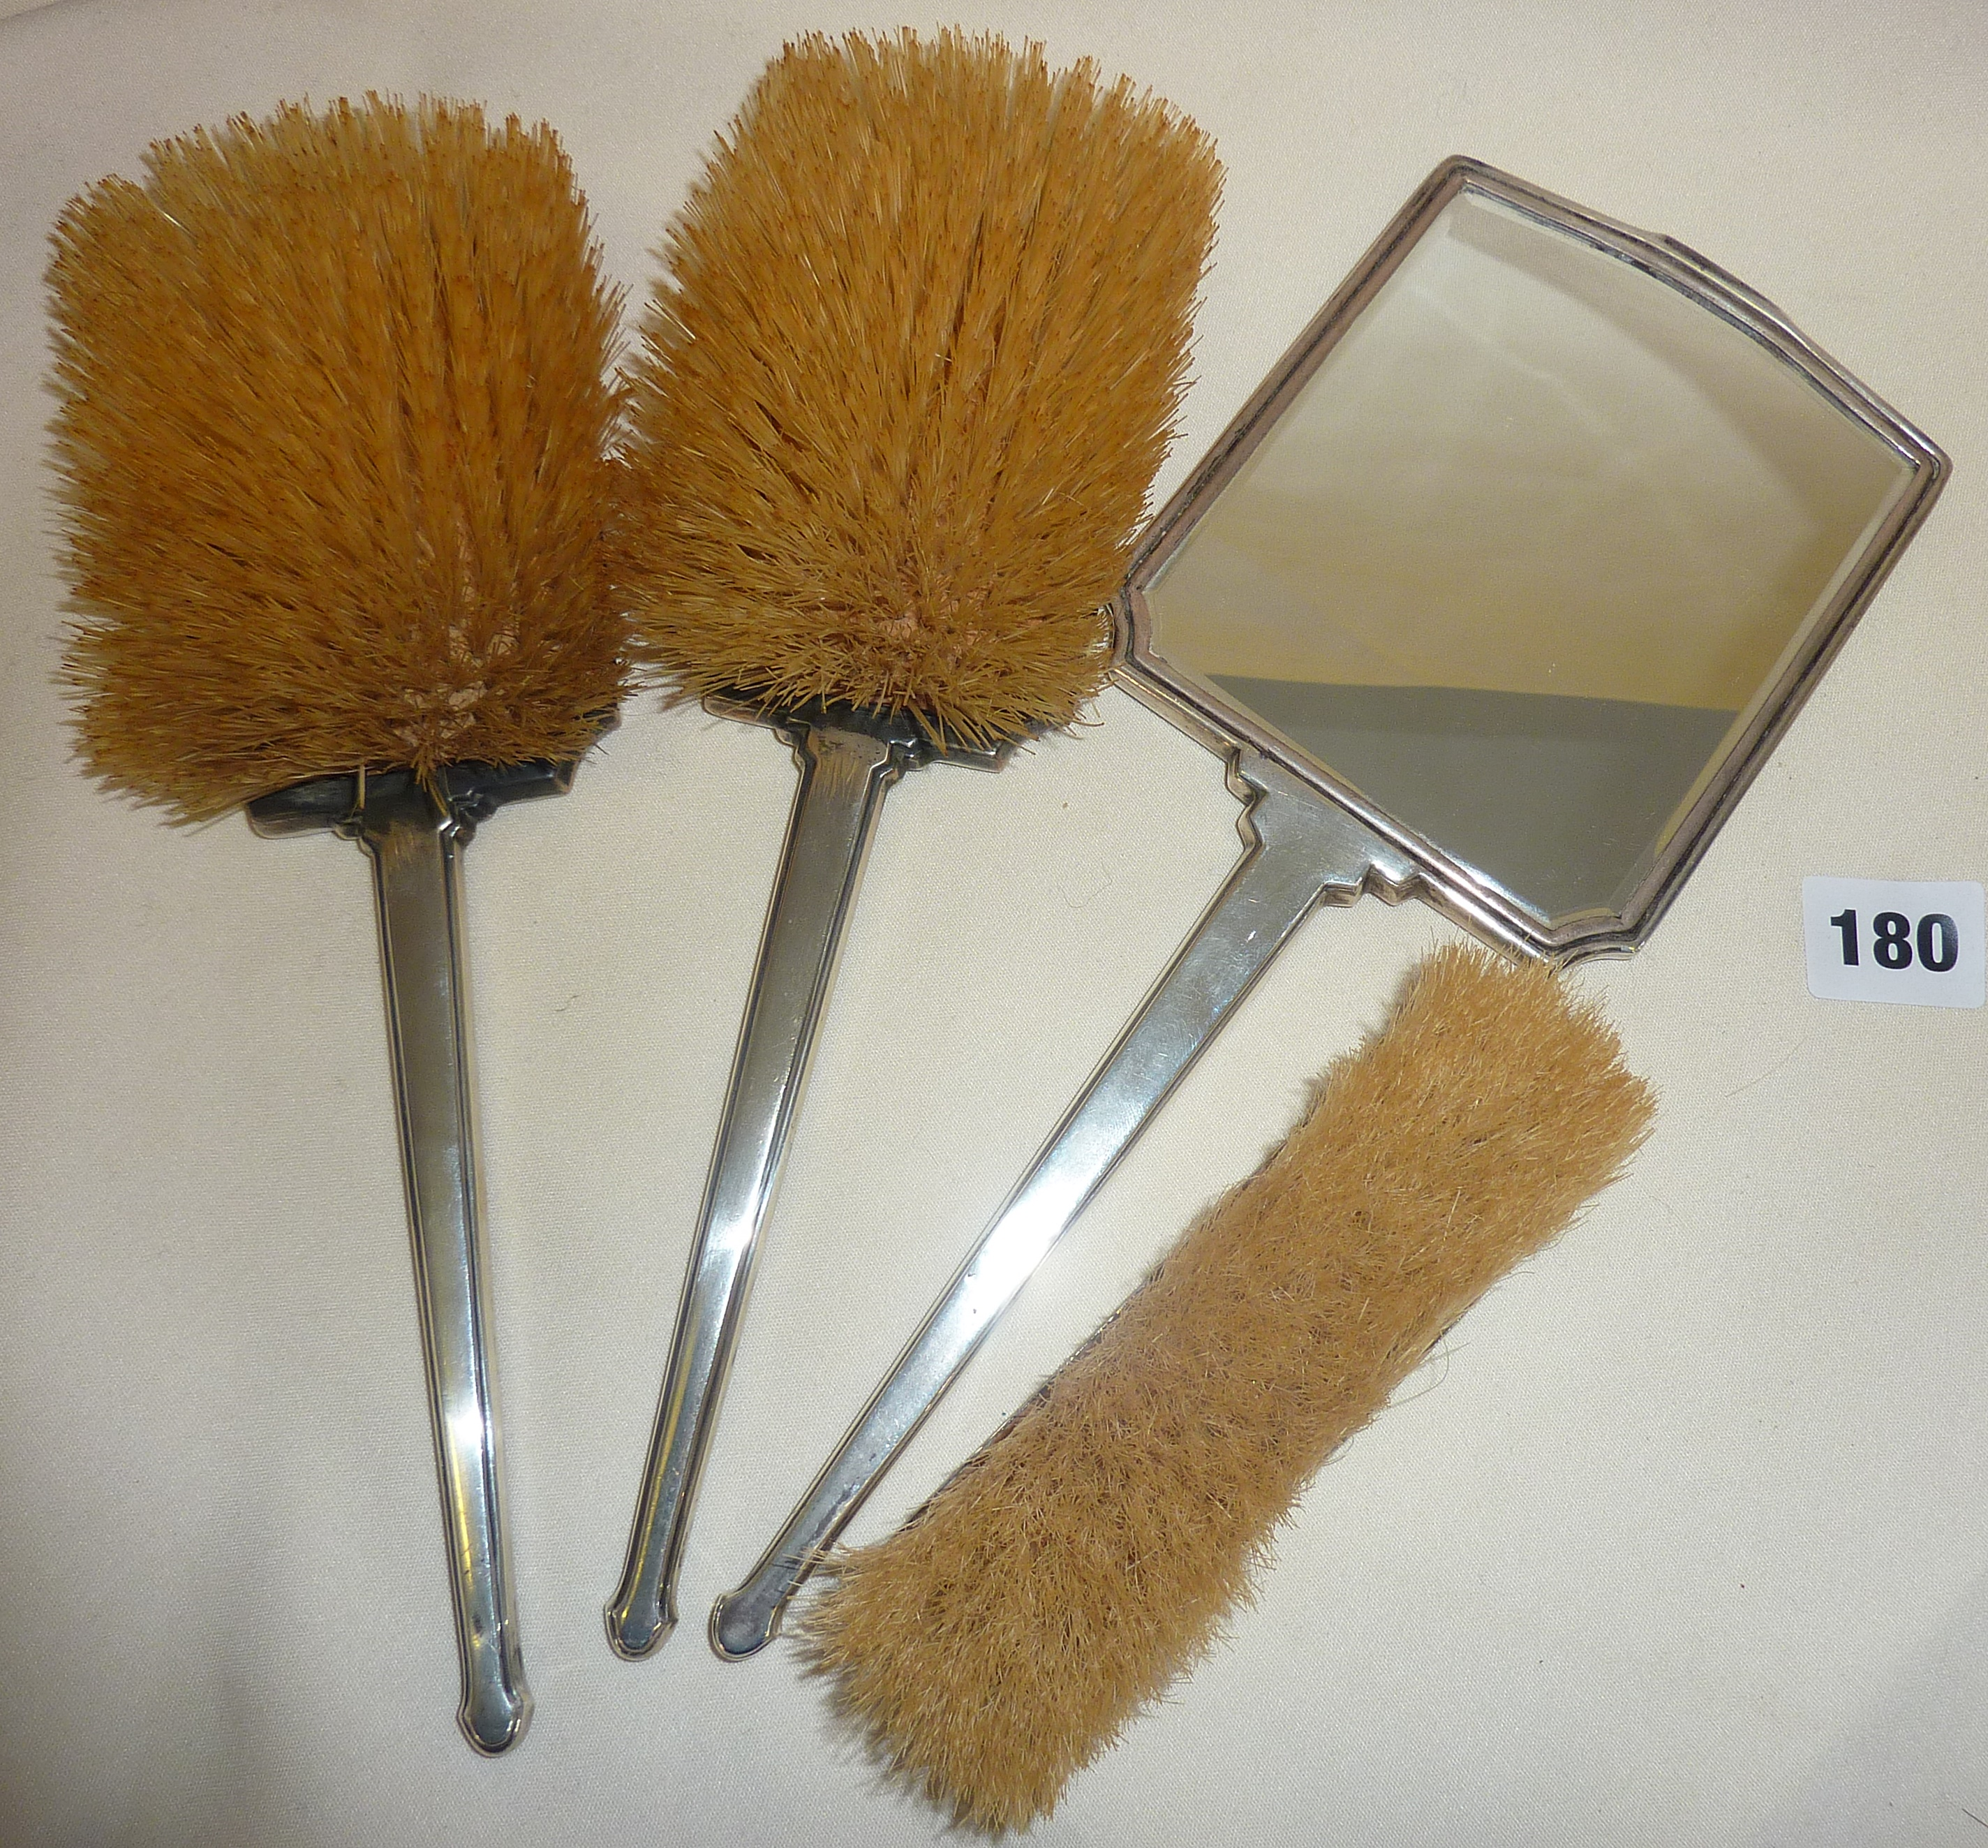 Four piece Art Deco guilloche enamel vanity set of brushes and mirror, retailed by Goldsmiths & - Image 2 of 2